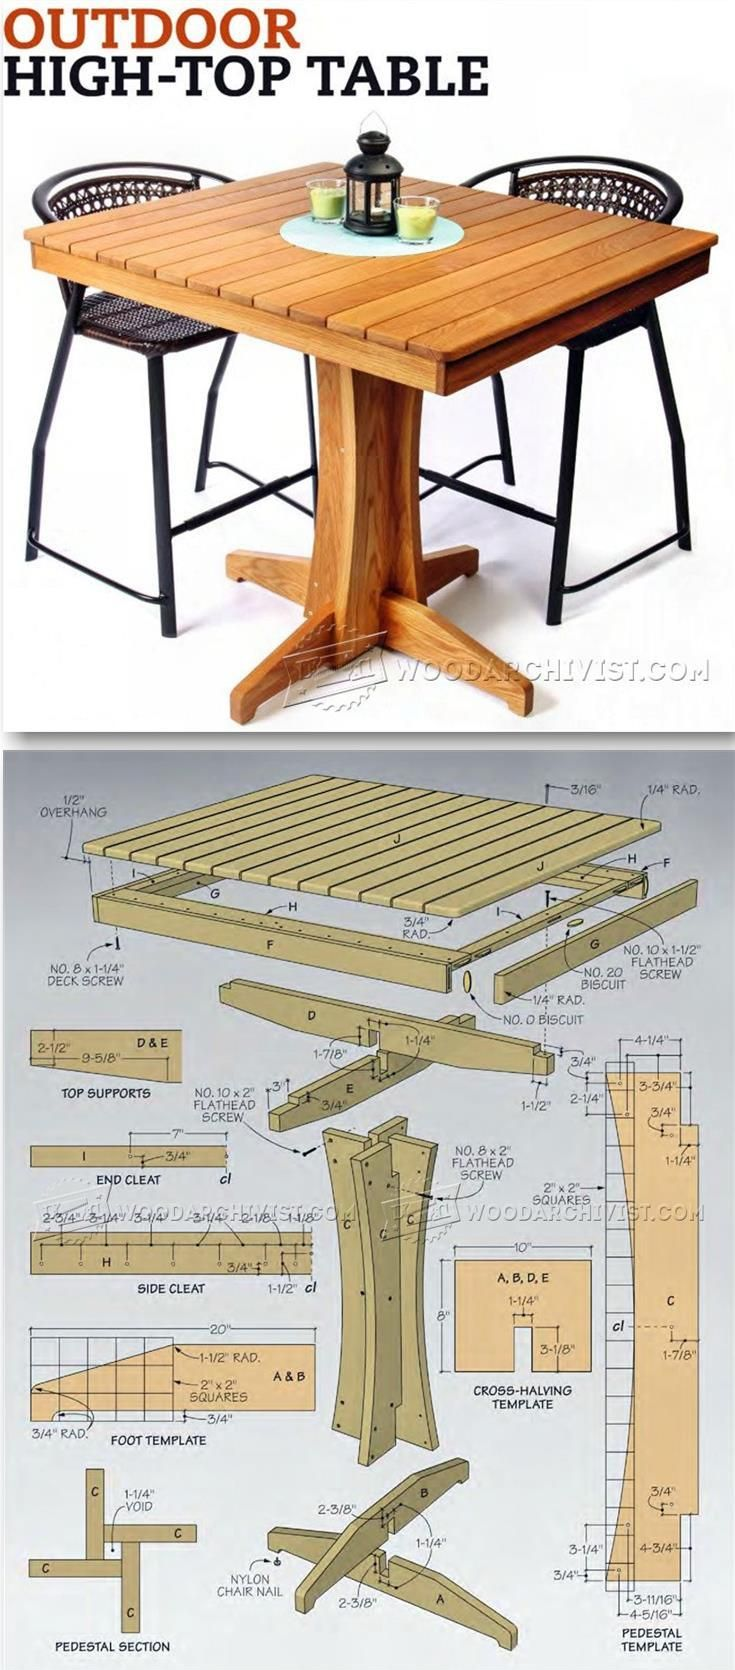 Outdoor High Top Table Plans   Outdoor Furniture Plans U0026 Projects |  WoodArchivist.com Part 85